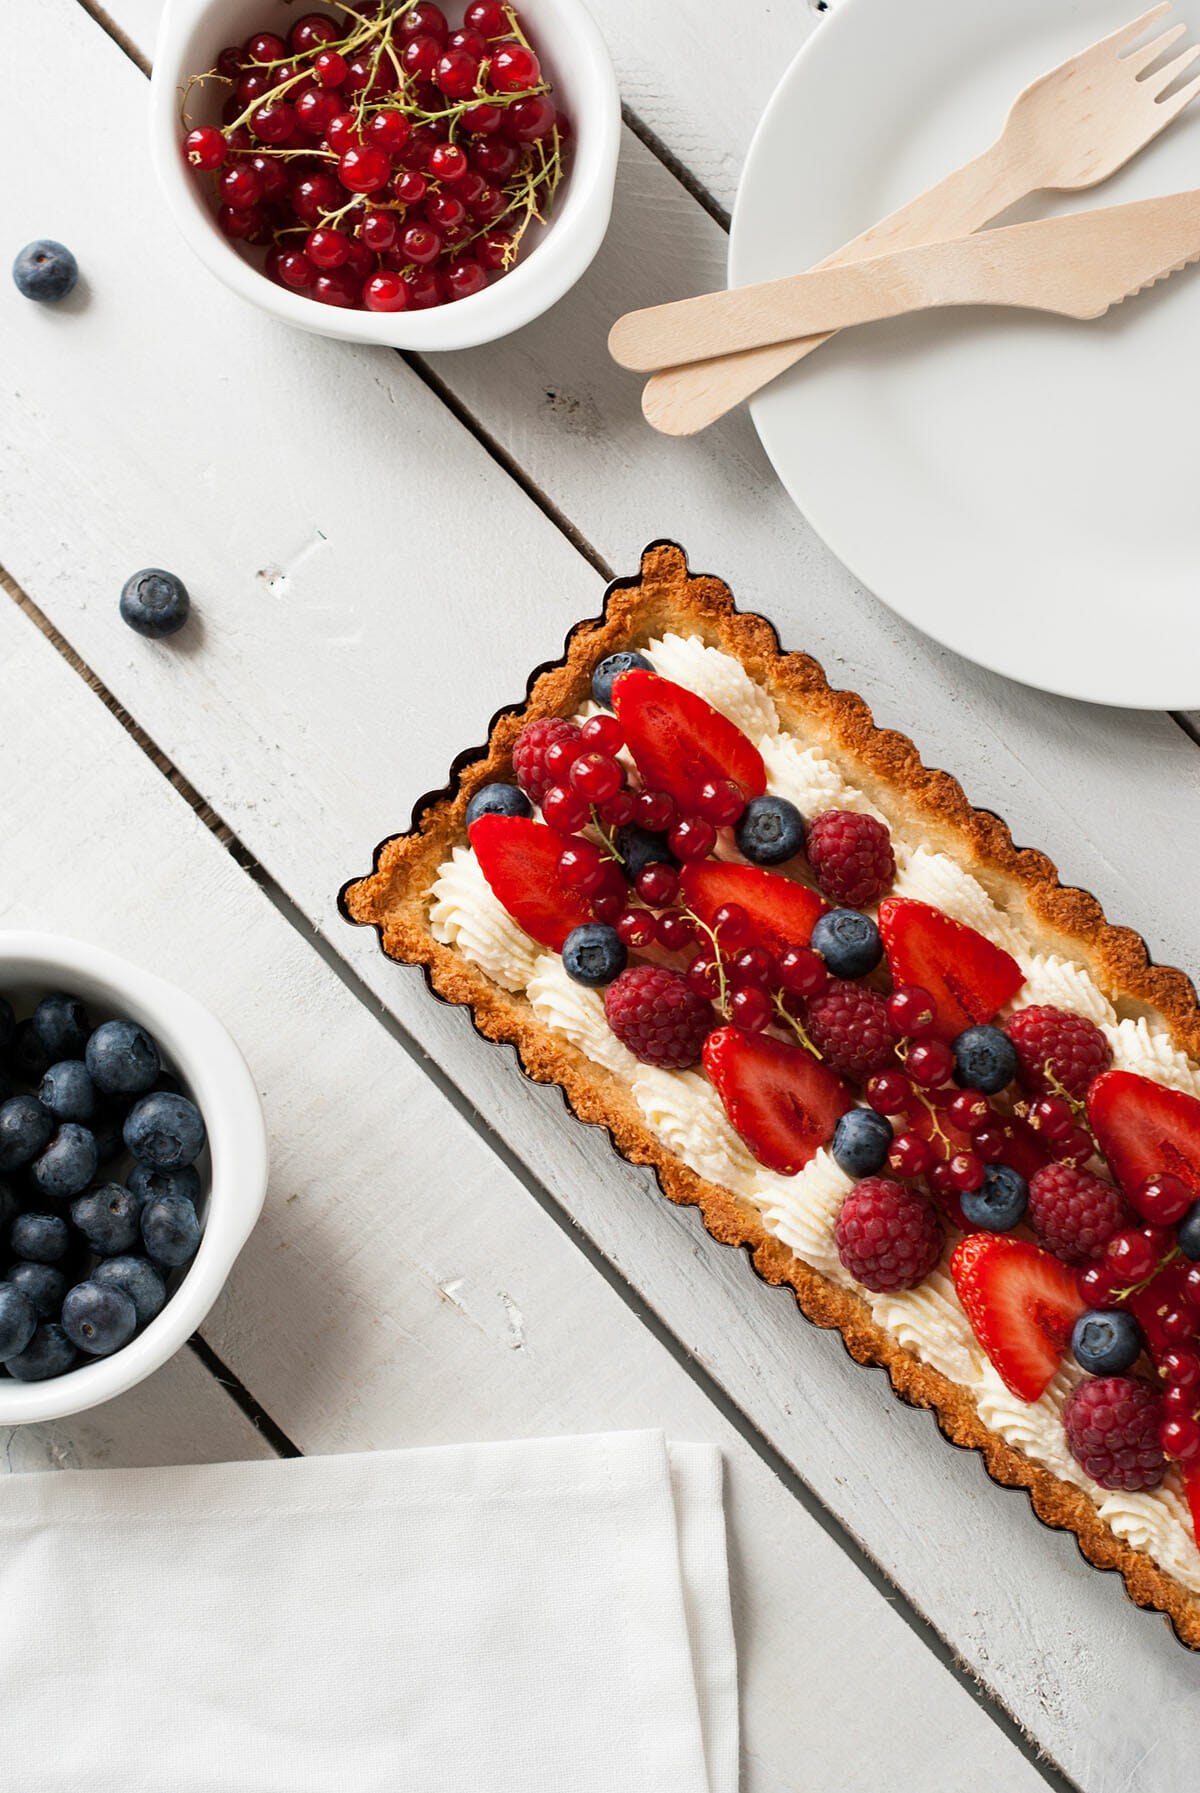 Tarte fruits rouges vanille coco | Lilie Bakery